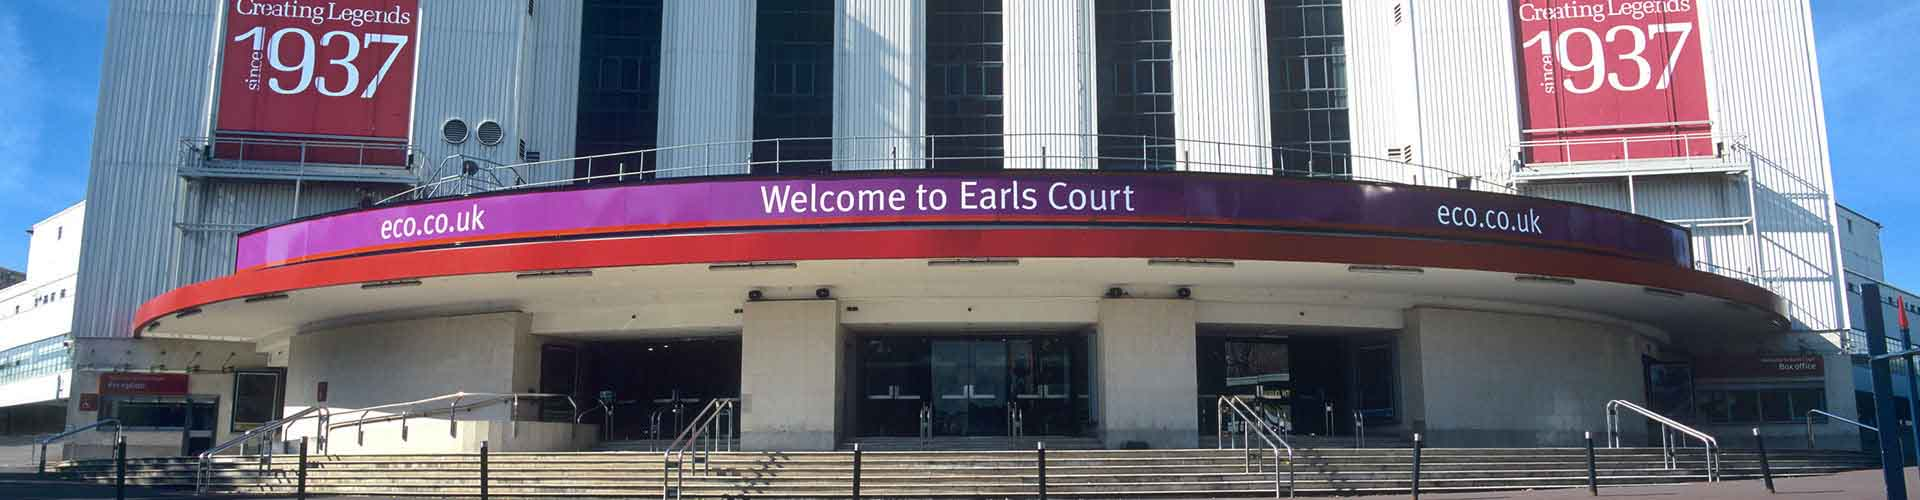 London – Hotels in Earls Court. Maps of London, Photos and Reviews for each Hotel in London.